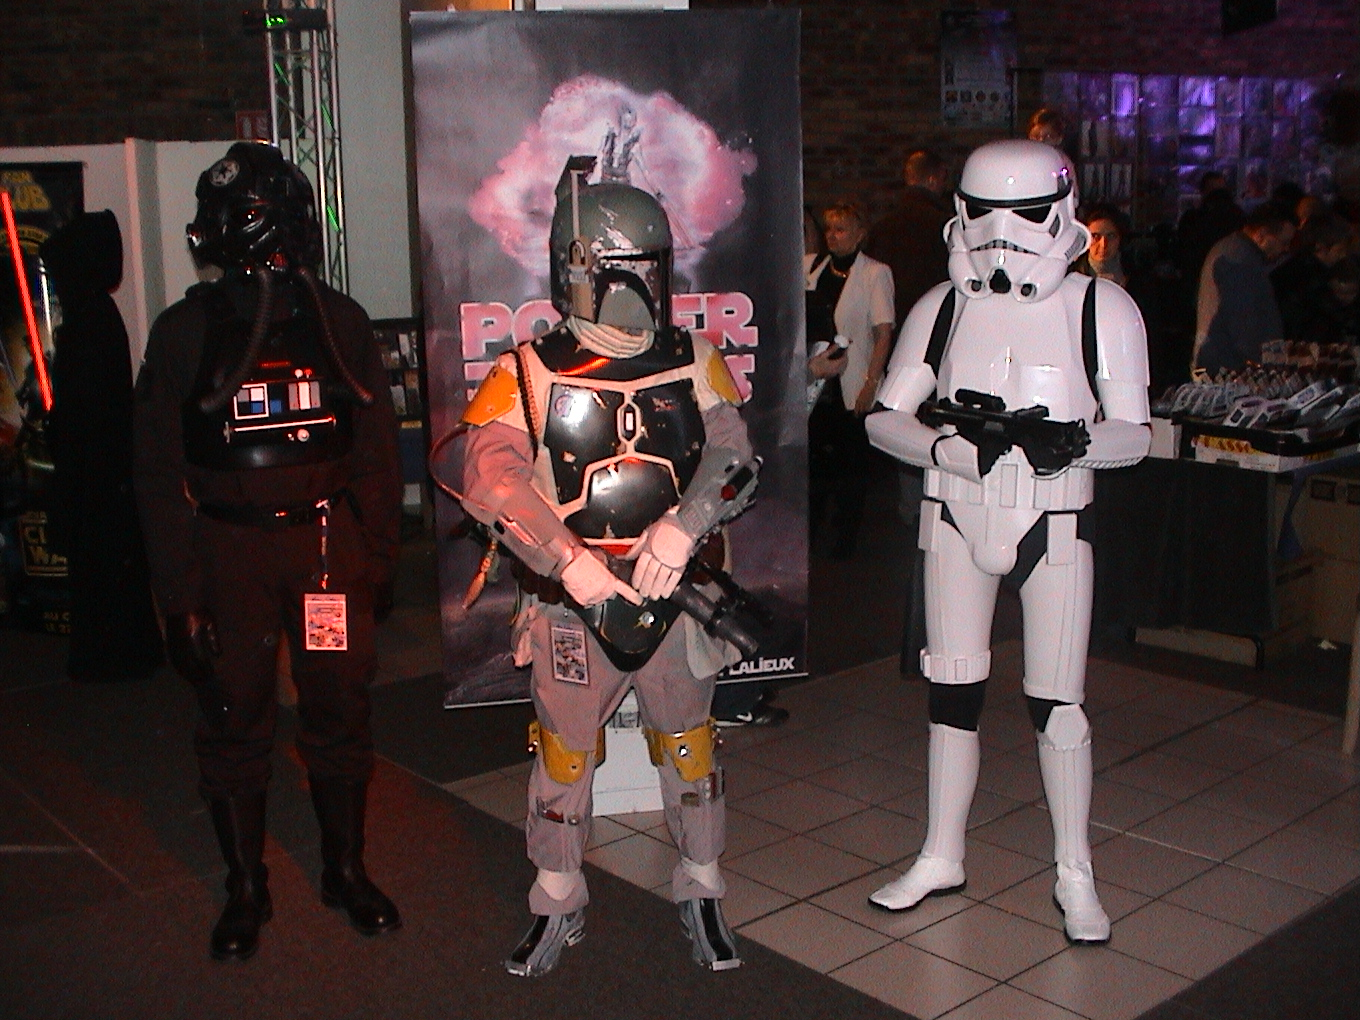 Photo 113 - Pilote TIE, Boba Fett et Stormtrooper...